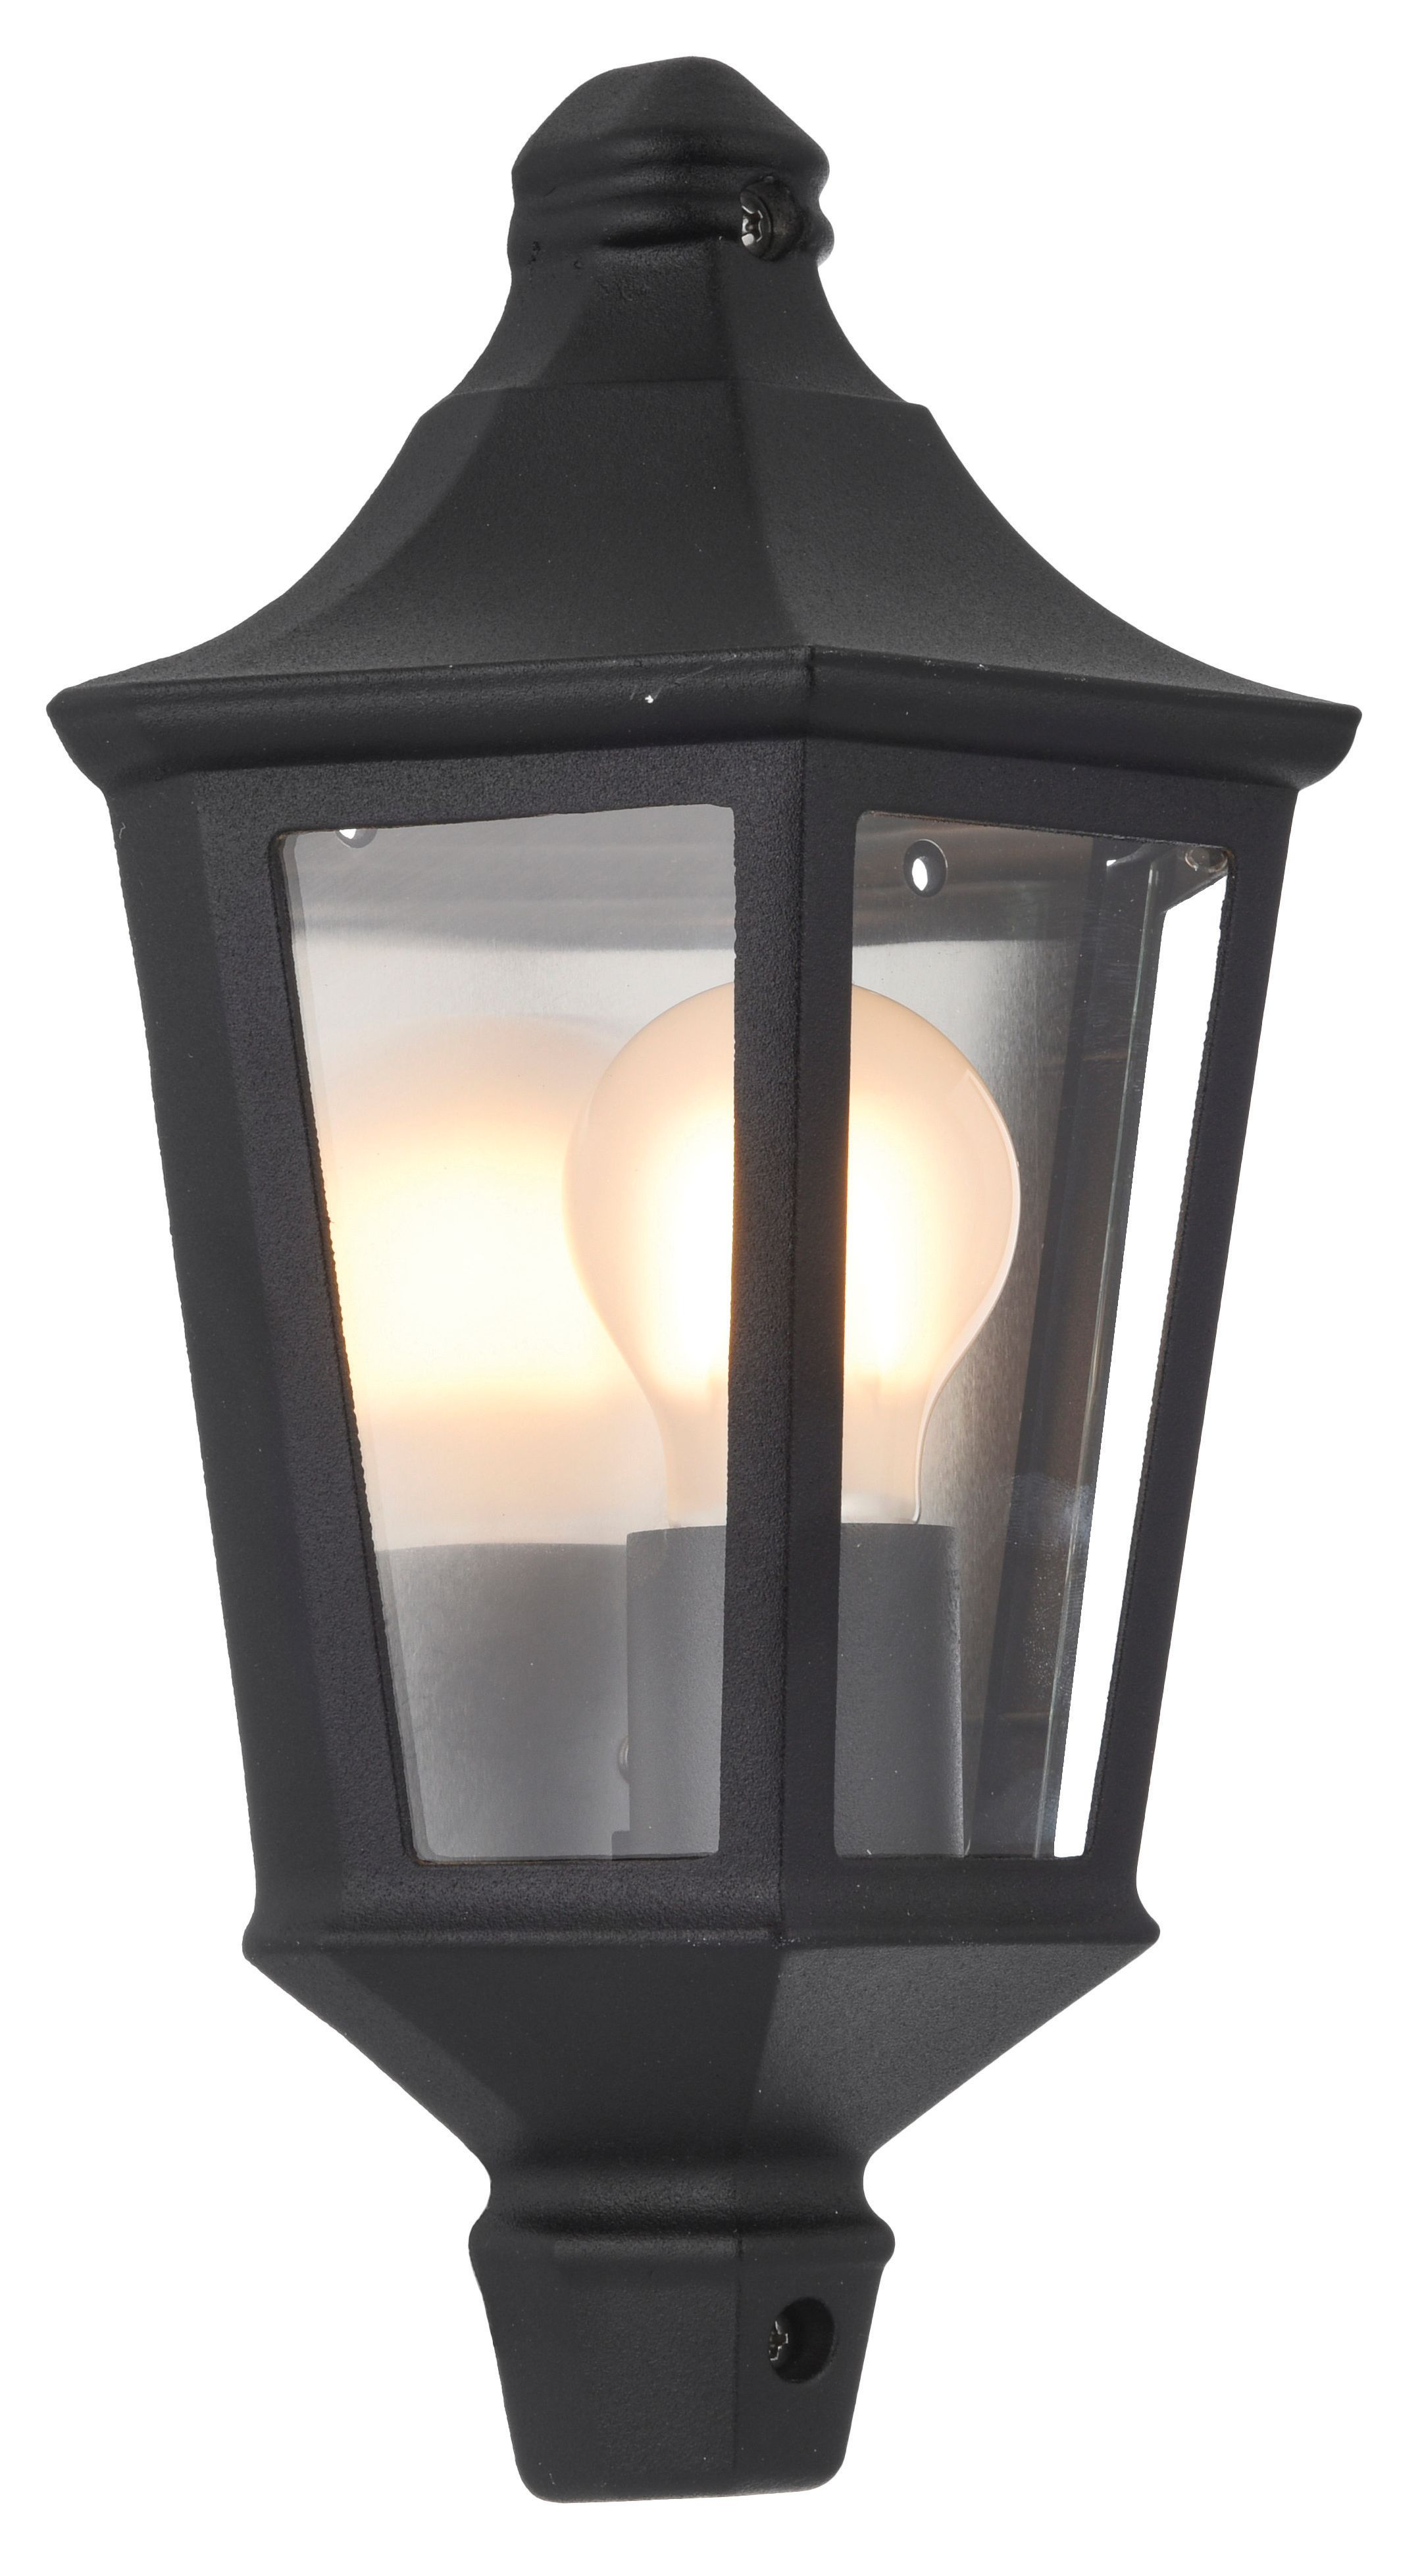 Wickes Garden Wall Lights : Wickes 60W Naples Half Lantern Black Wickes.co.uk